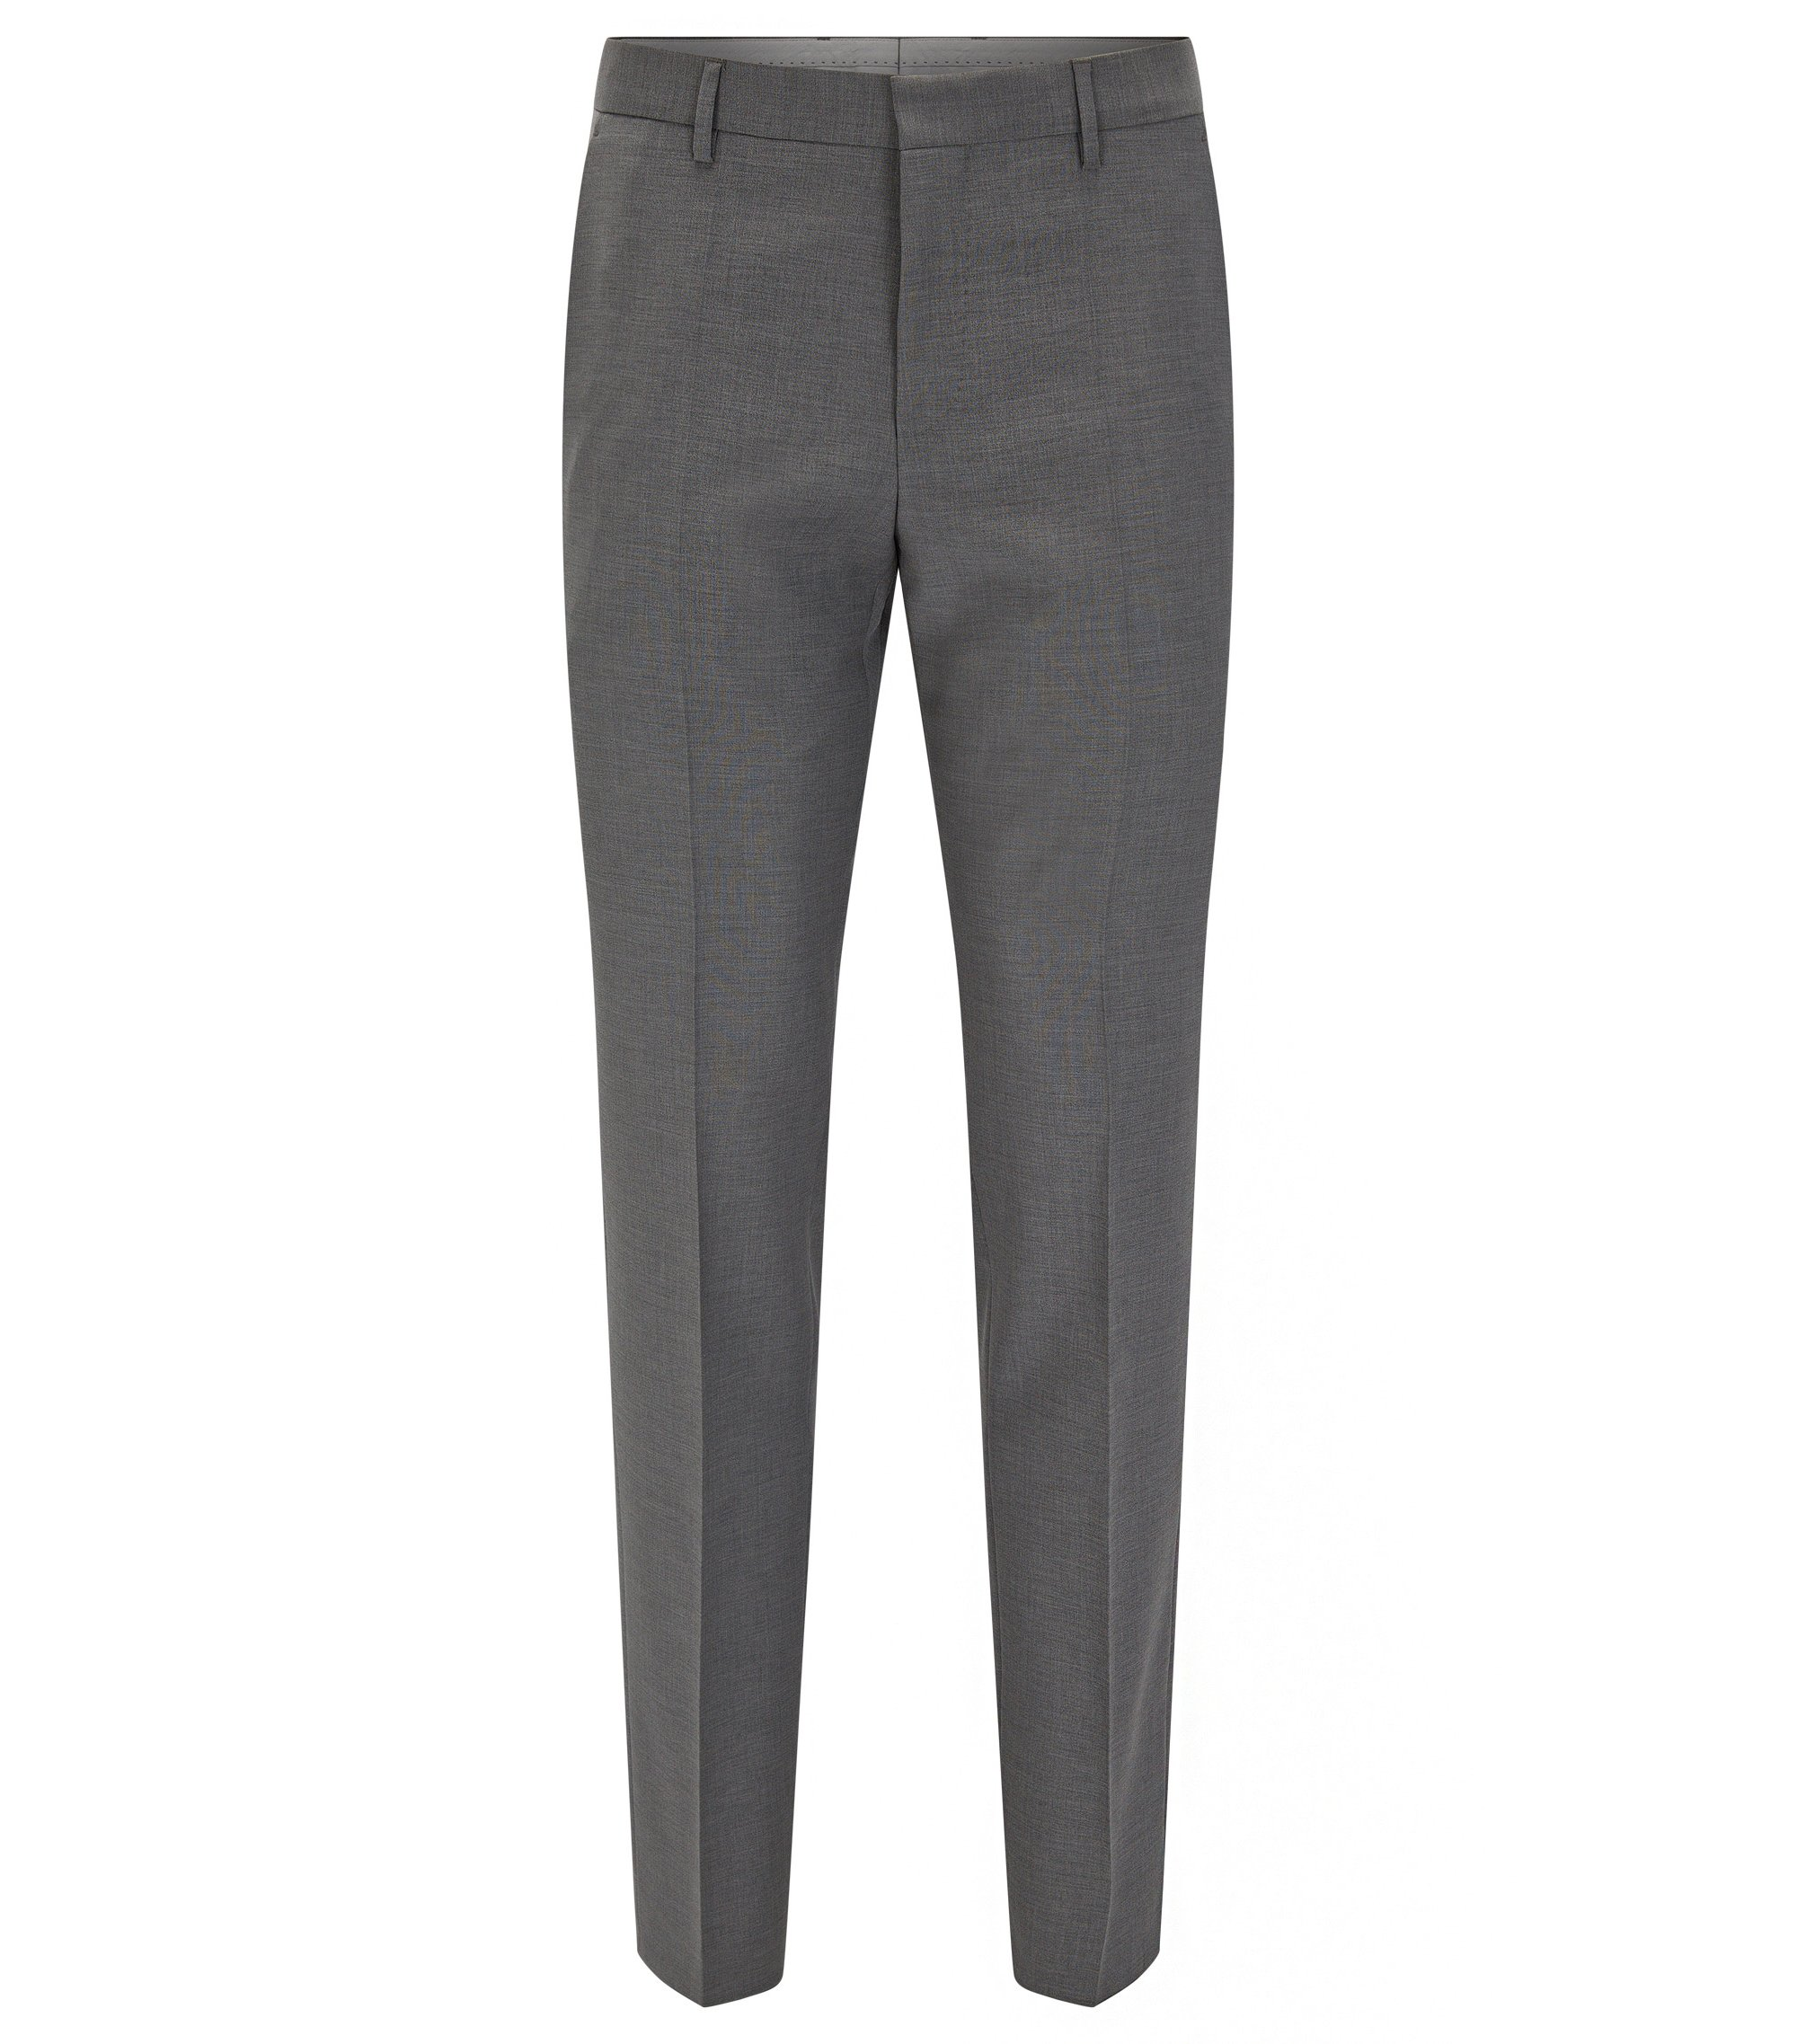 Virgin Wool Dress Pant, Slim Fit | Balte, Grey